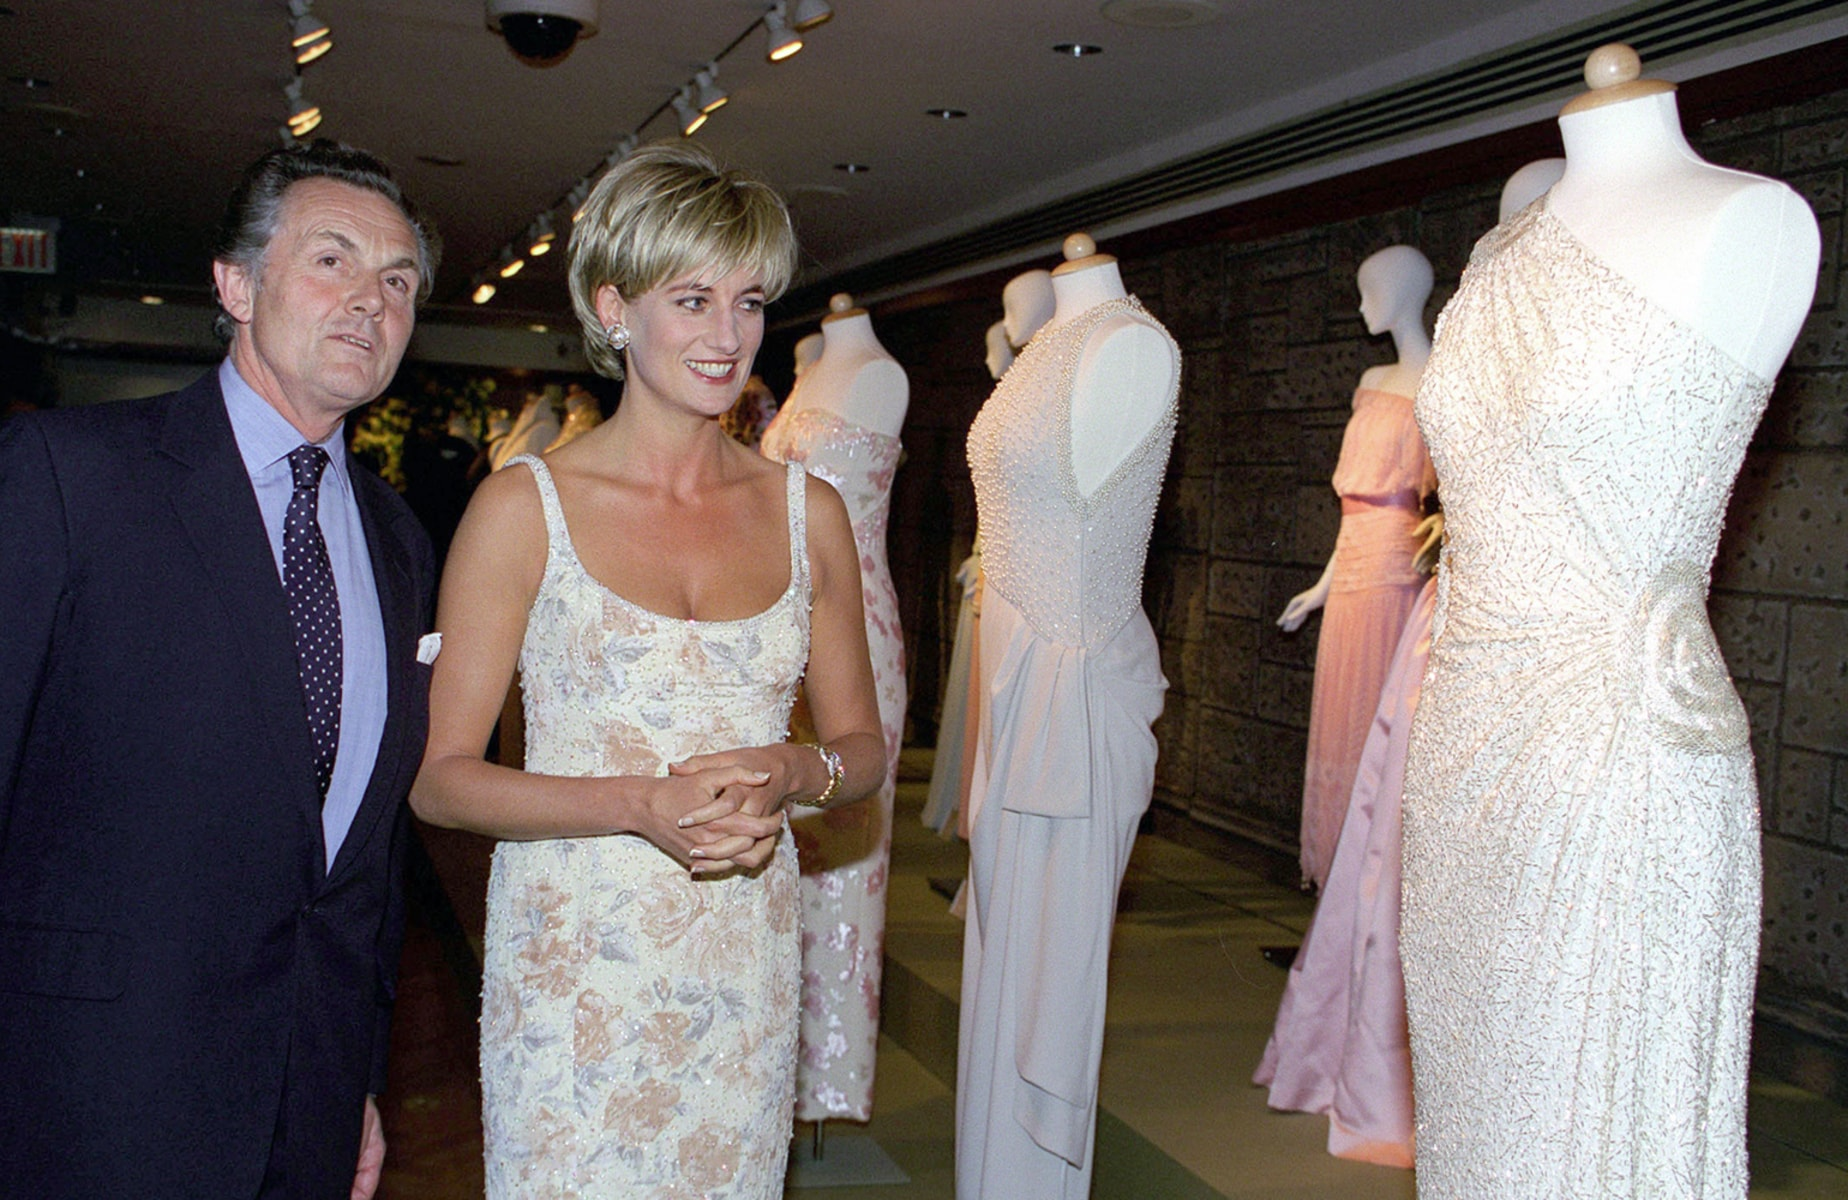 Princess Diana Ball Gown Is Sold For 167000 At London Auction